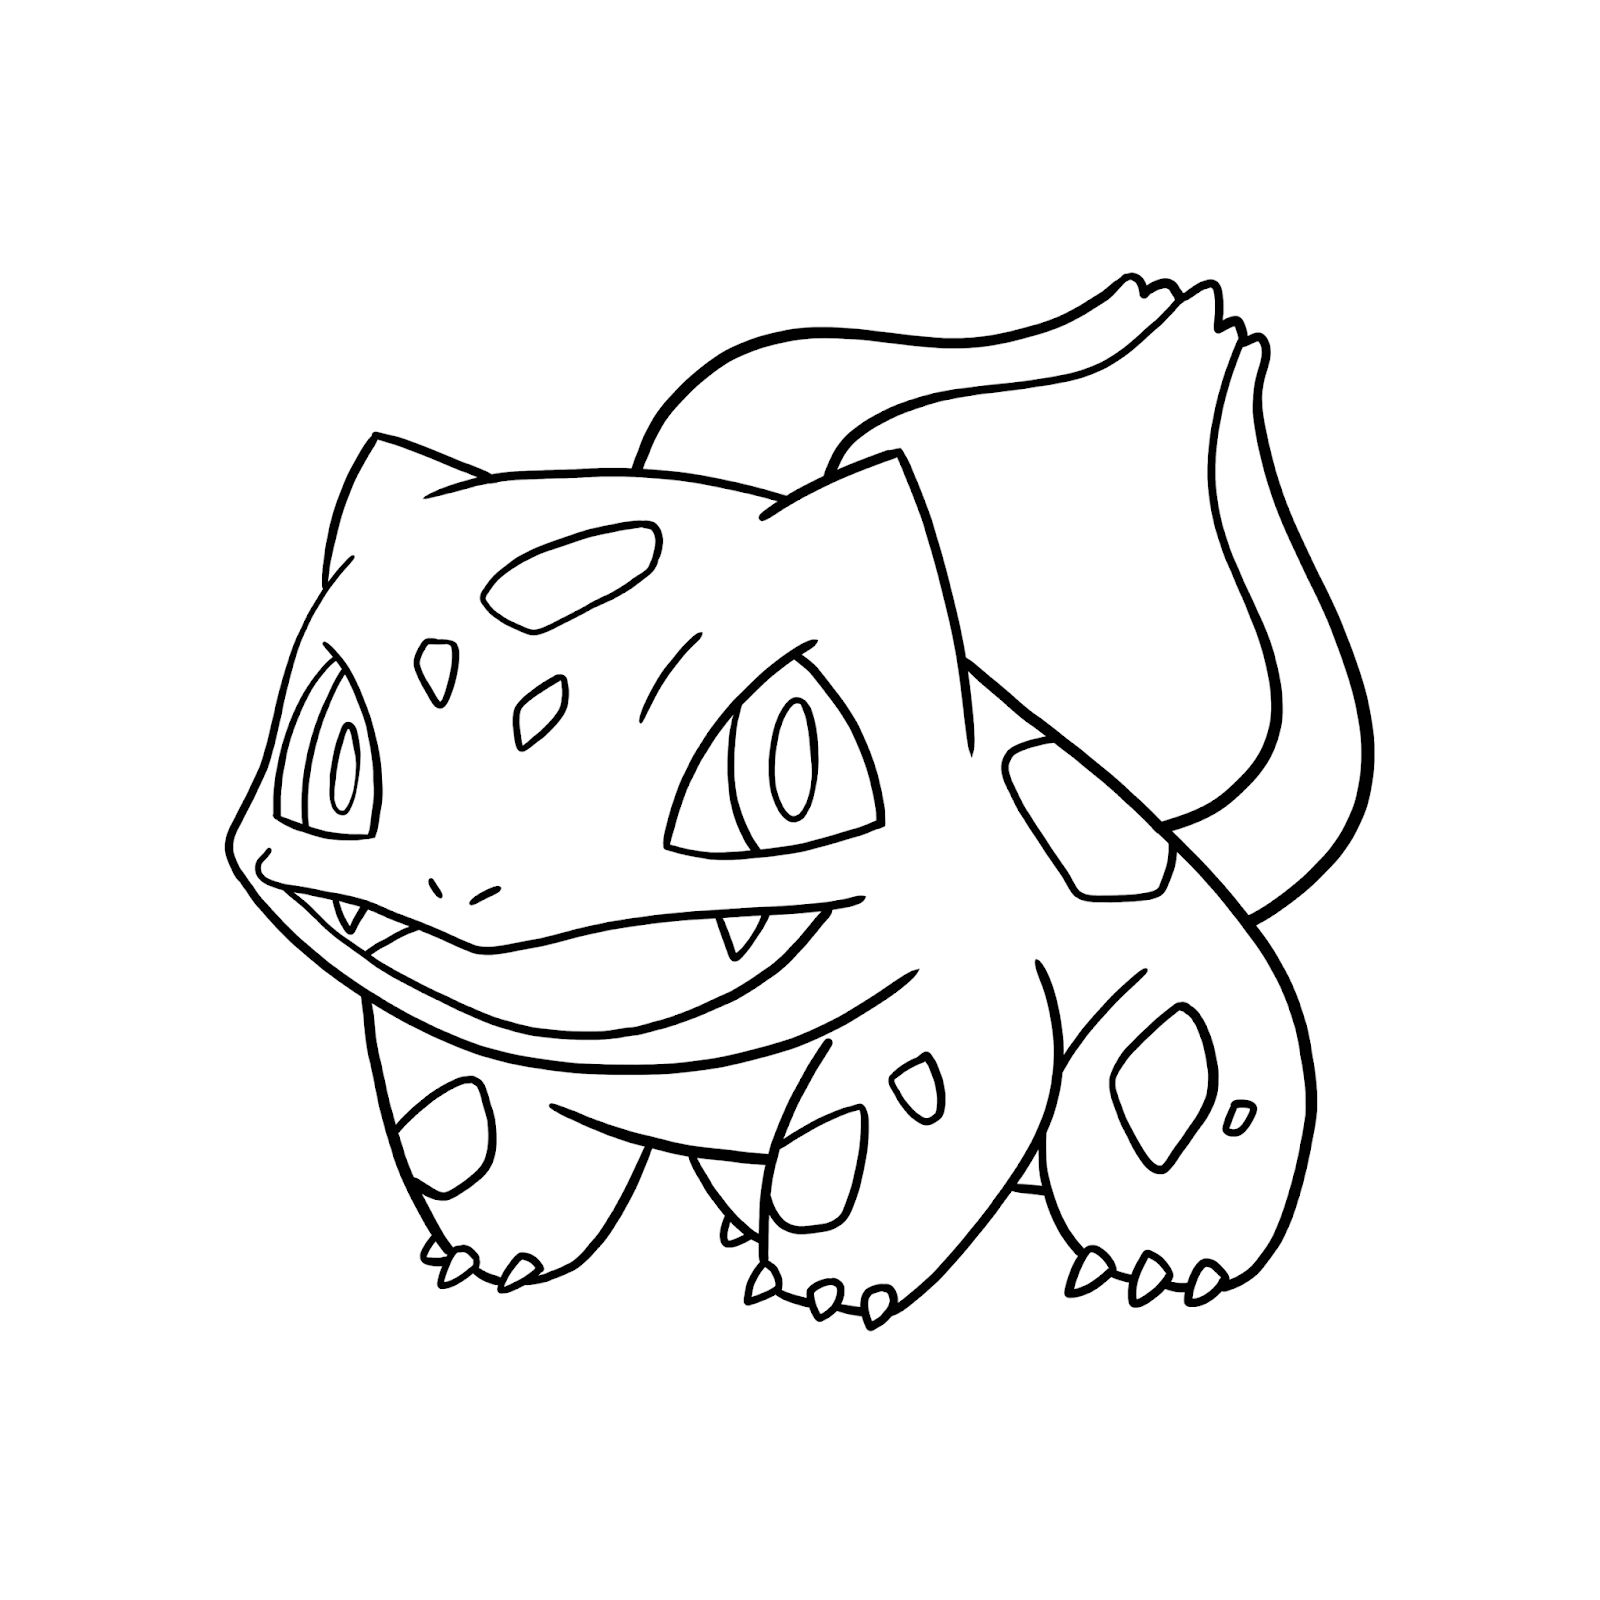 Bulbasaur Coloring Pages Free Pokemon Coloring Pages  Pokemon